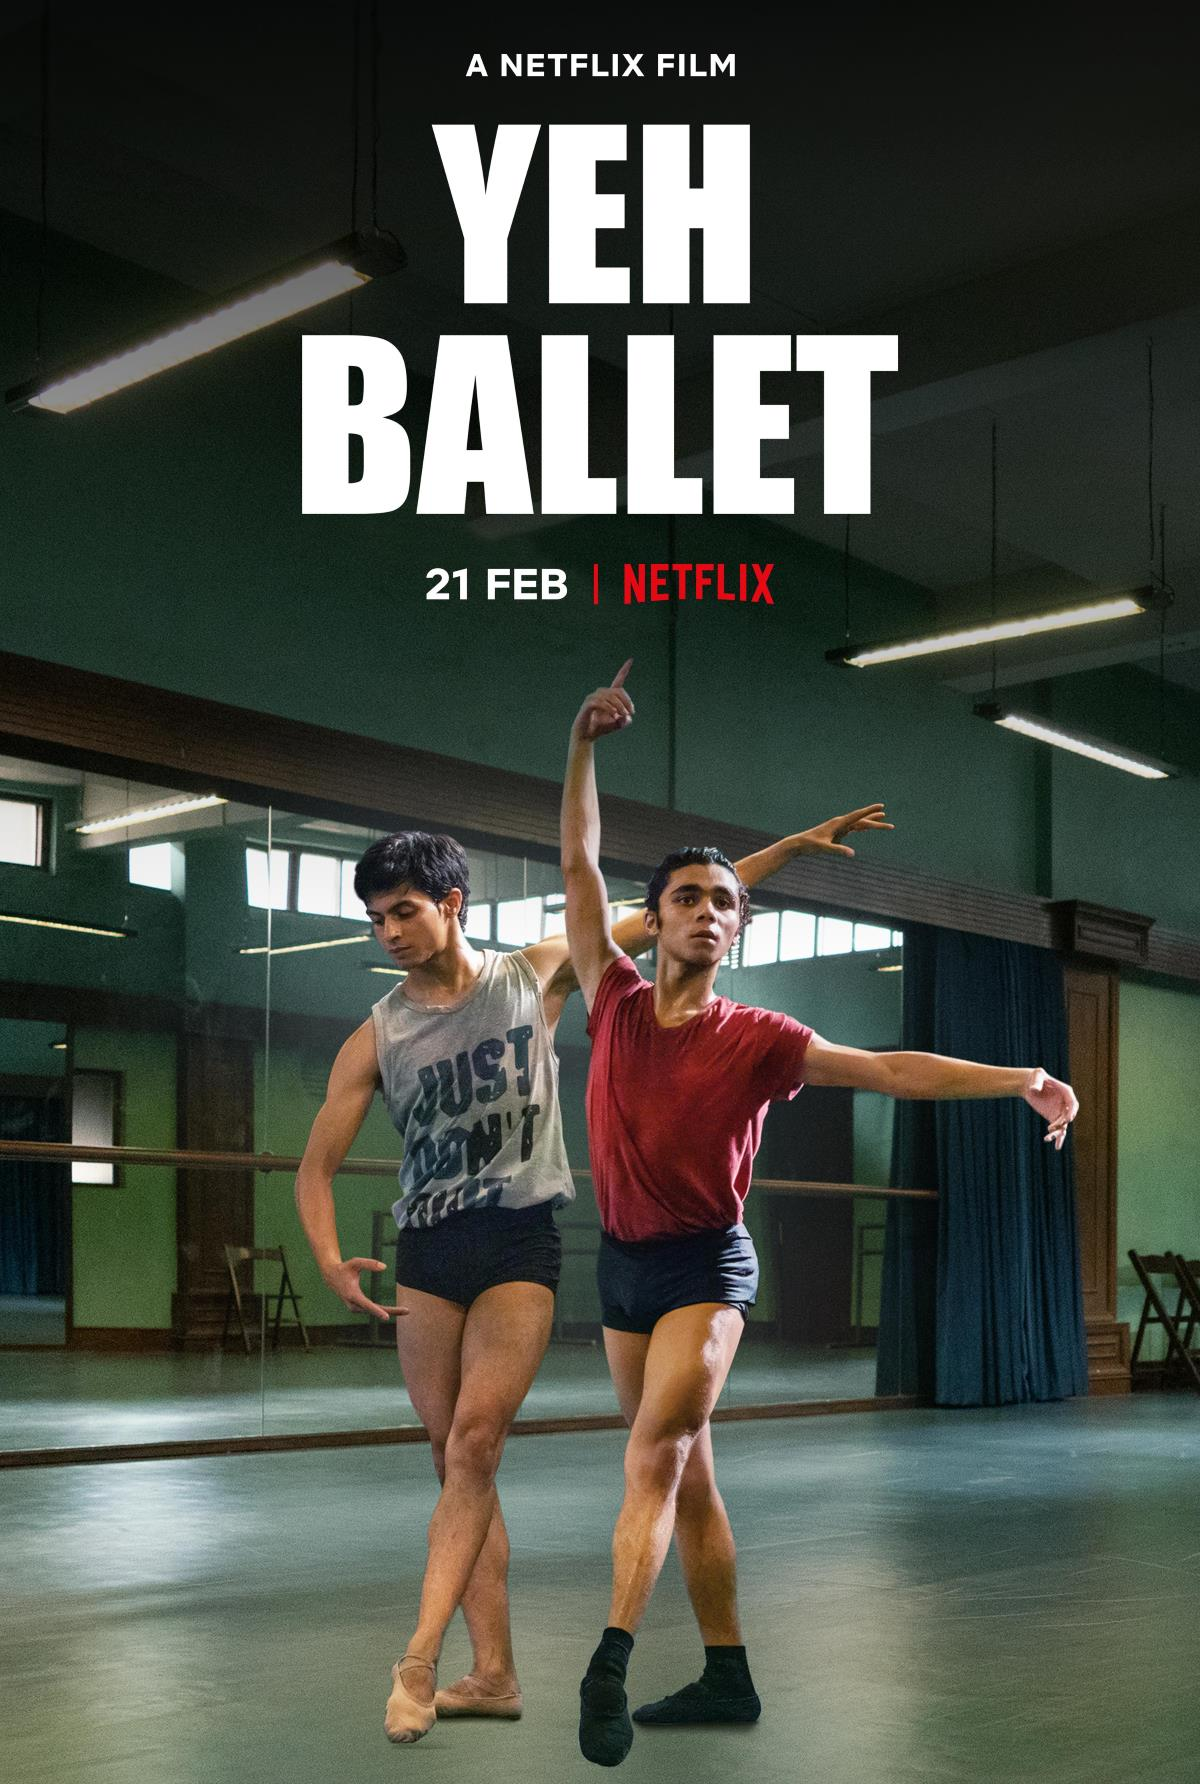 Yeh ballet (2020) - Bollywood Movie